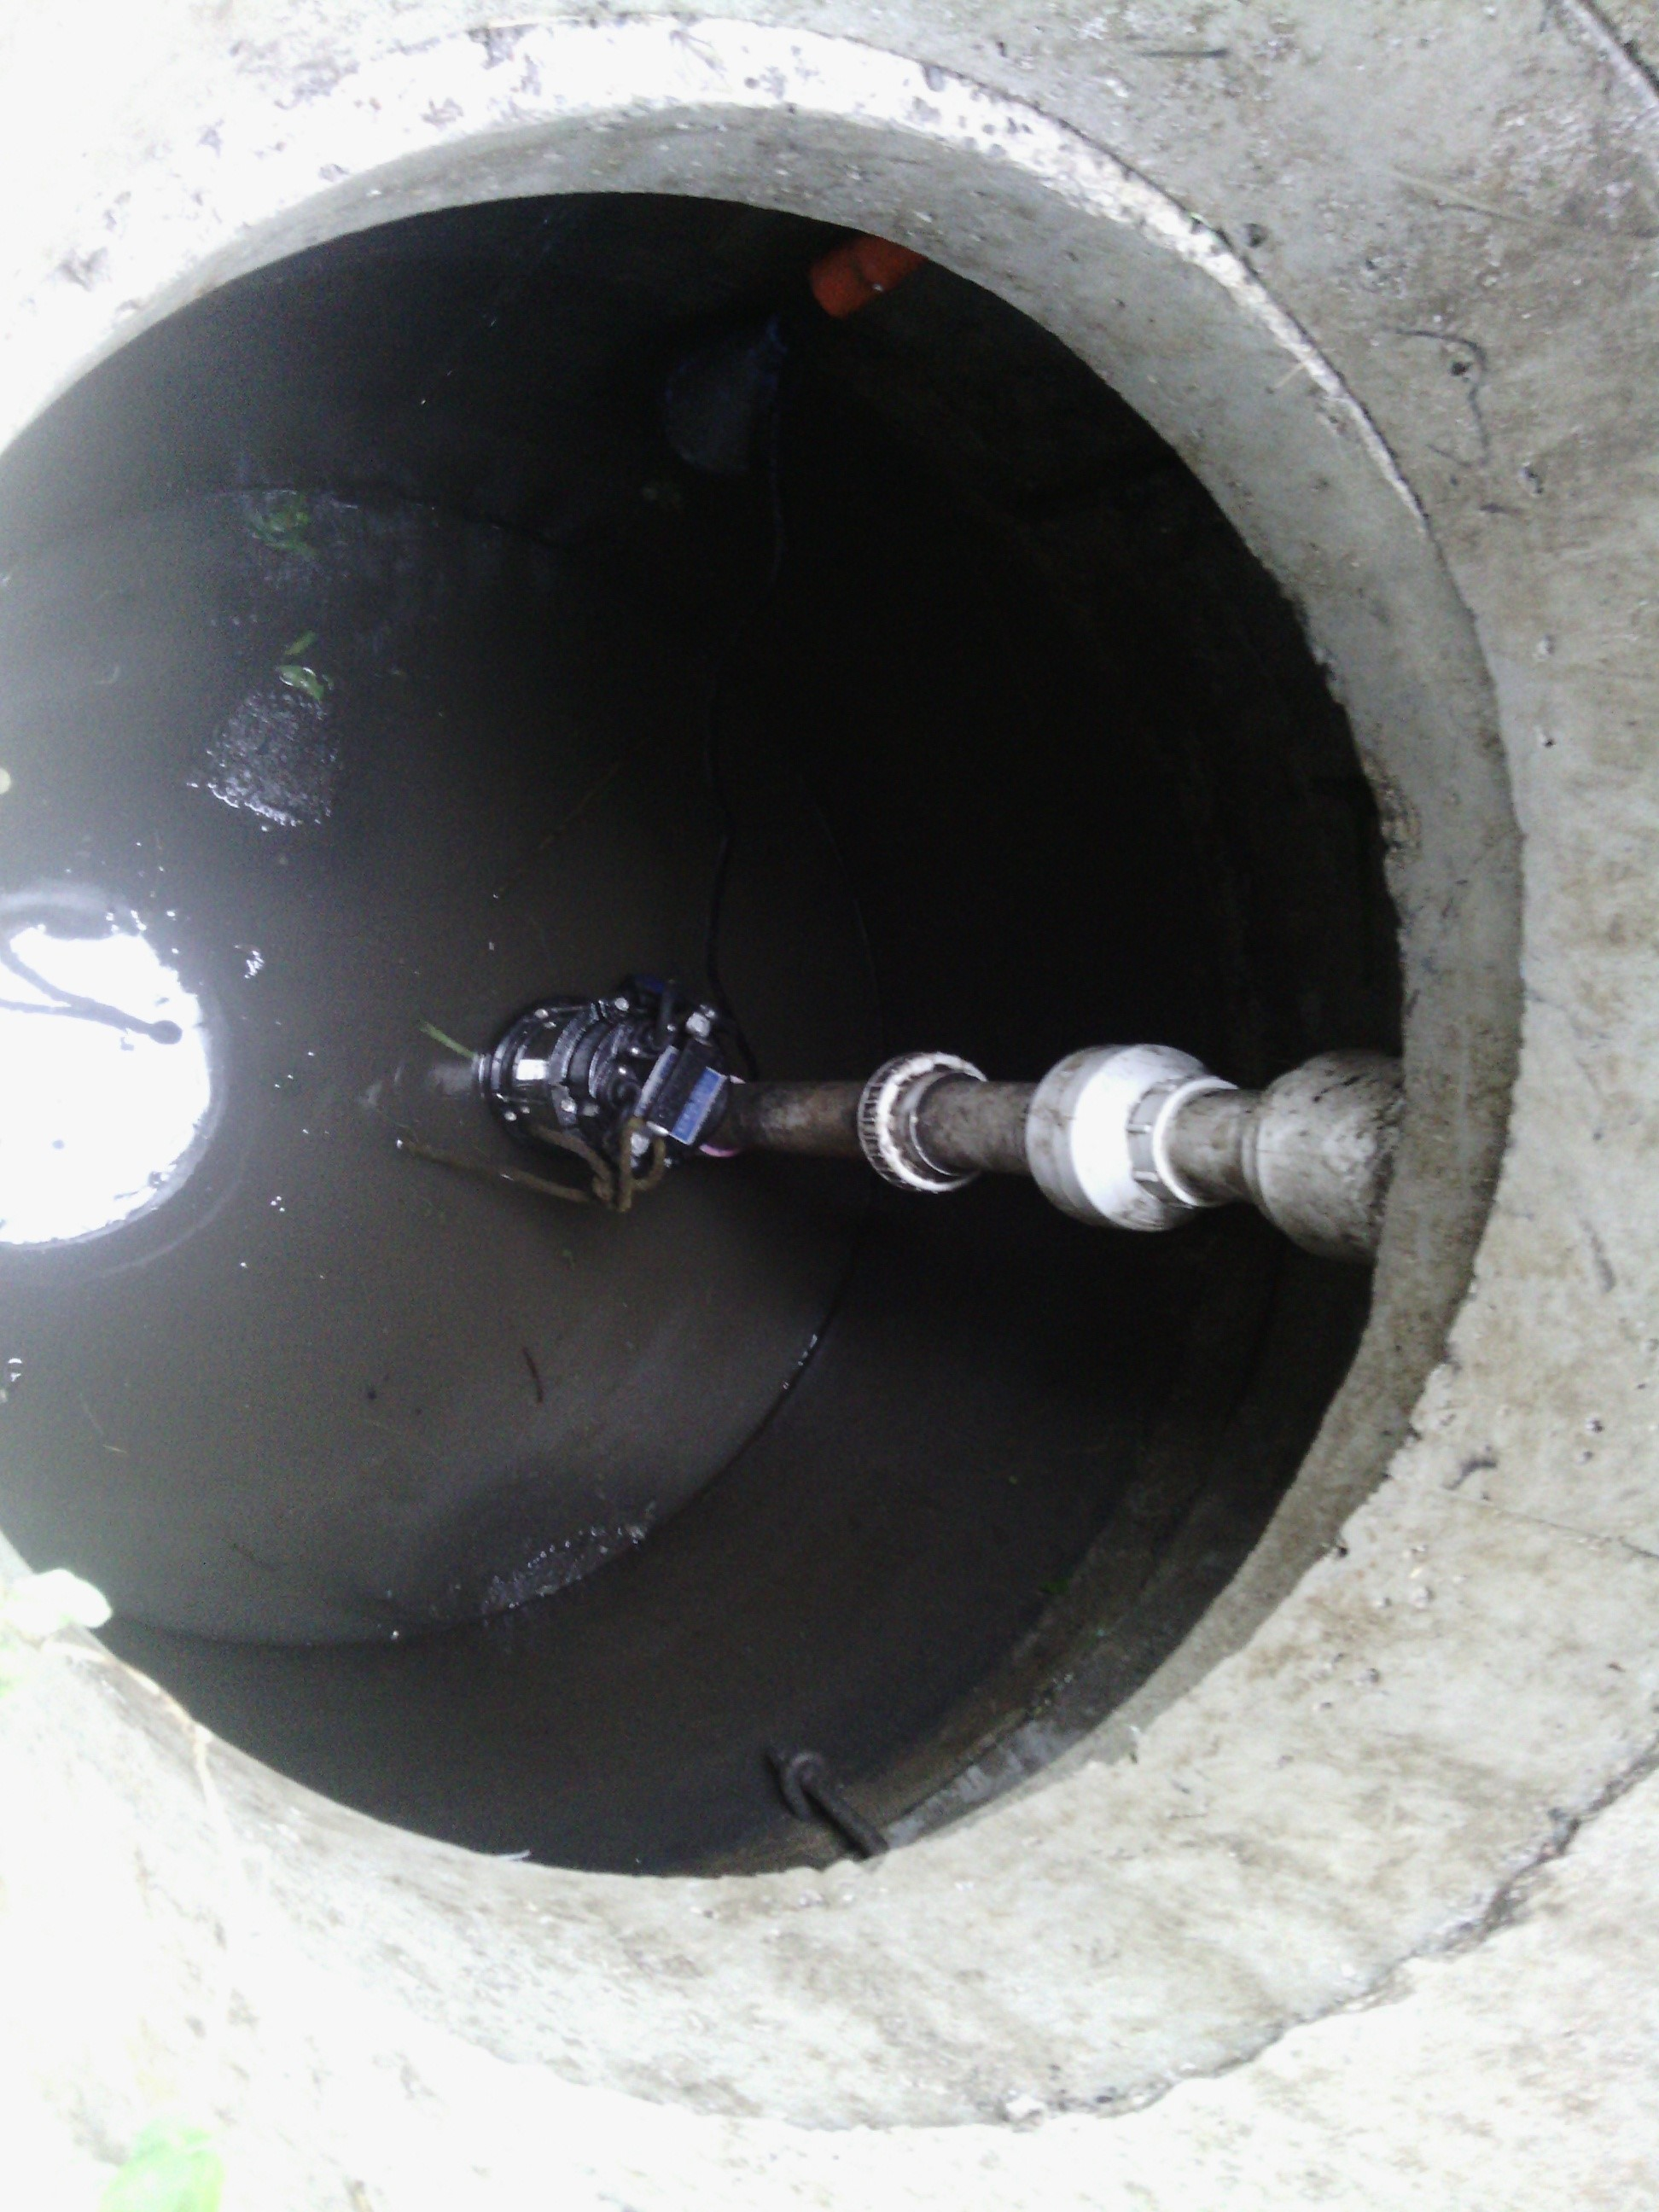 Subsoil Drainage Services Auckland Euro Plumbing Ltd